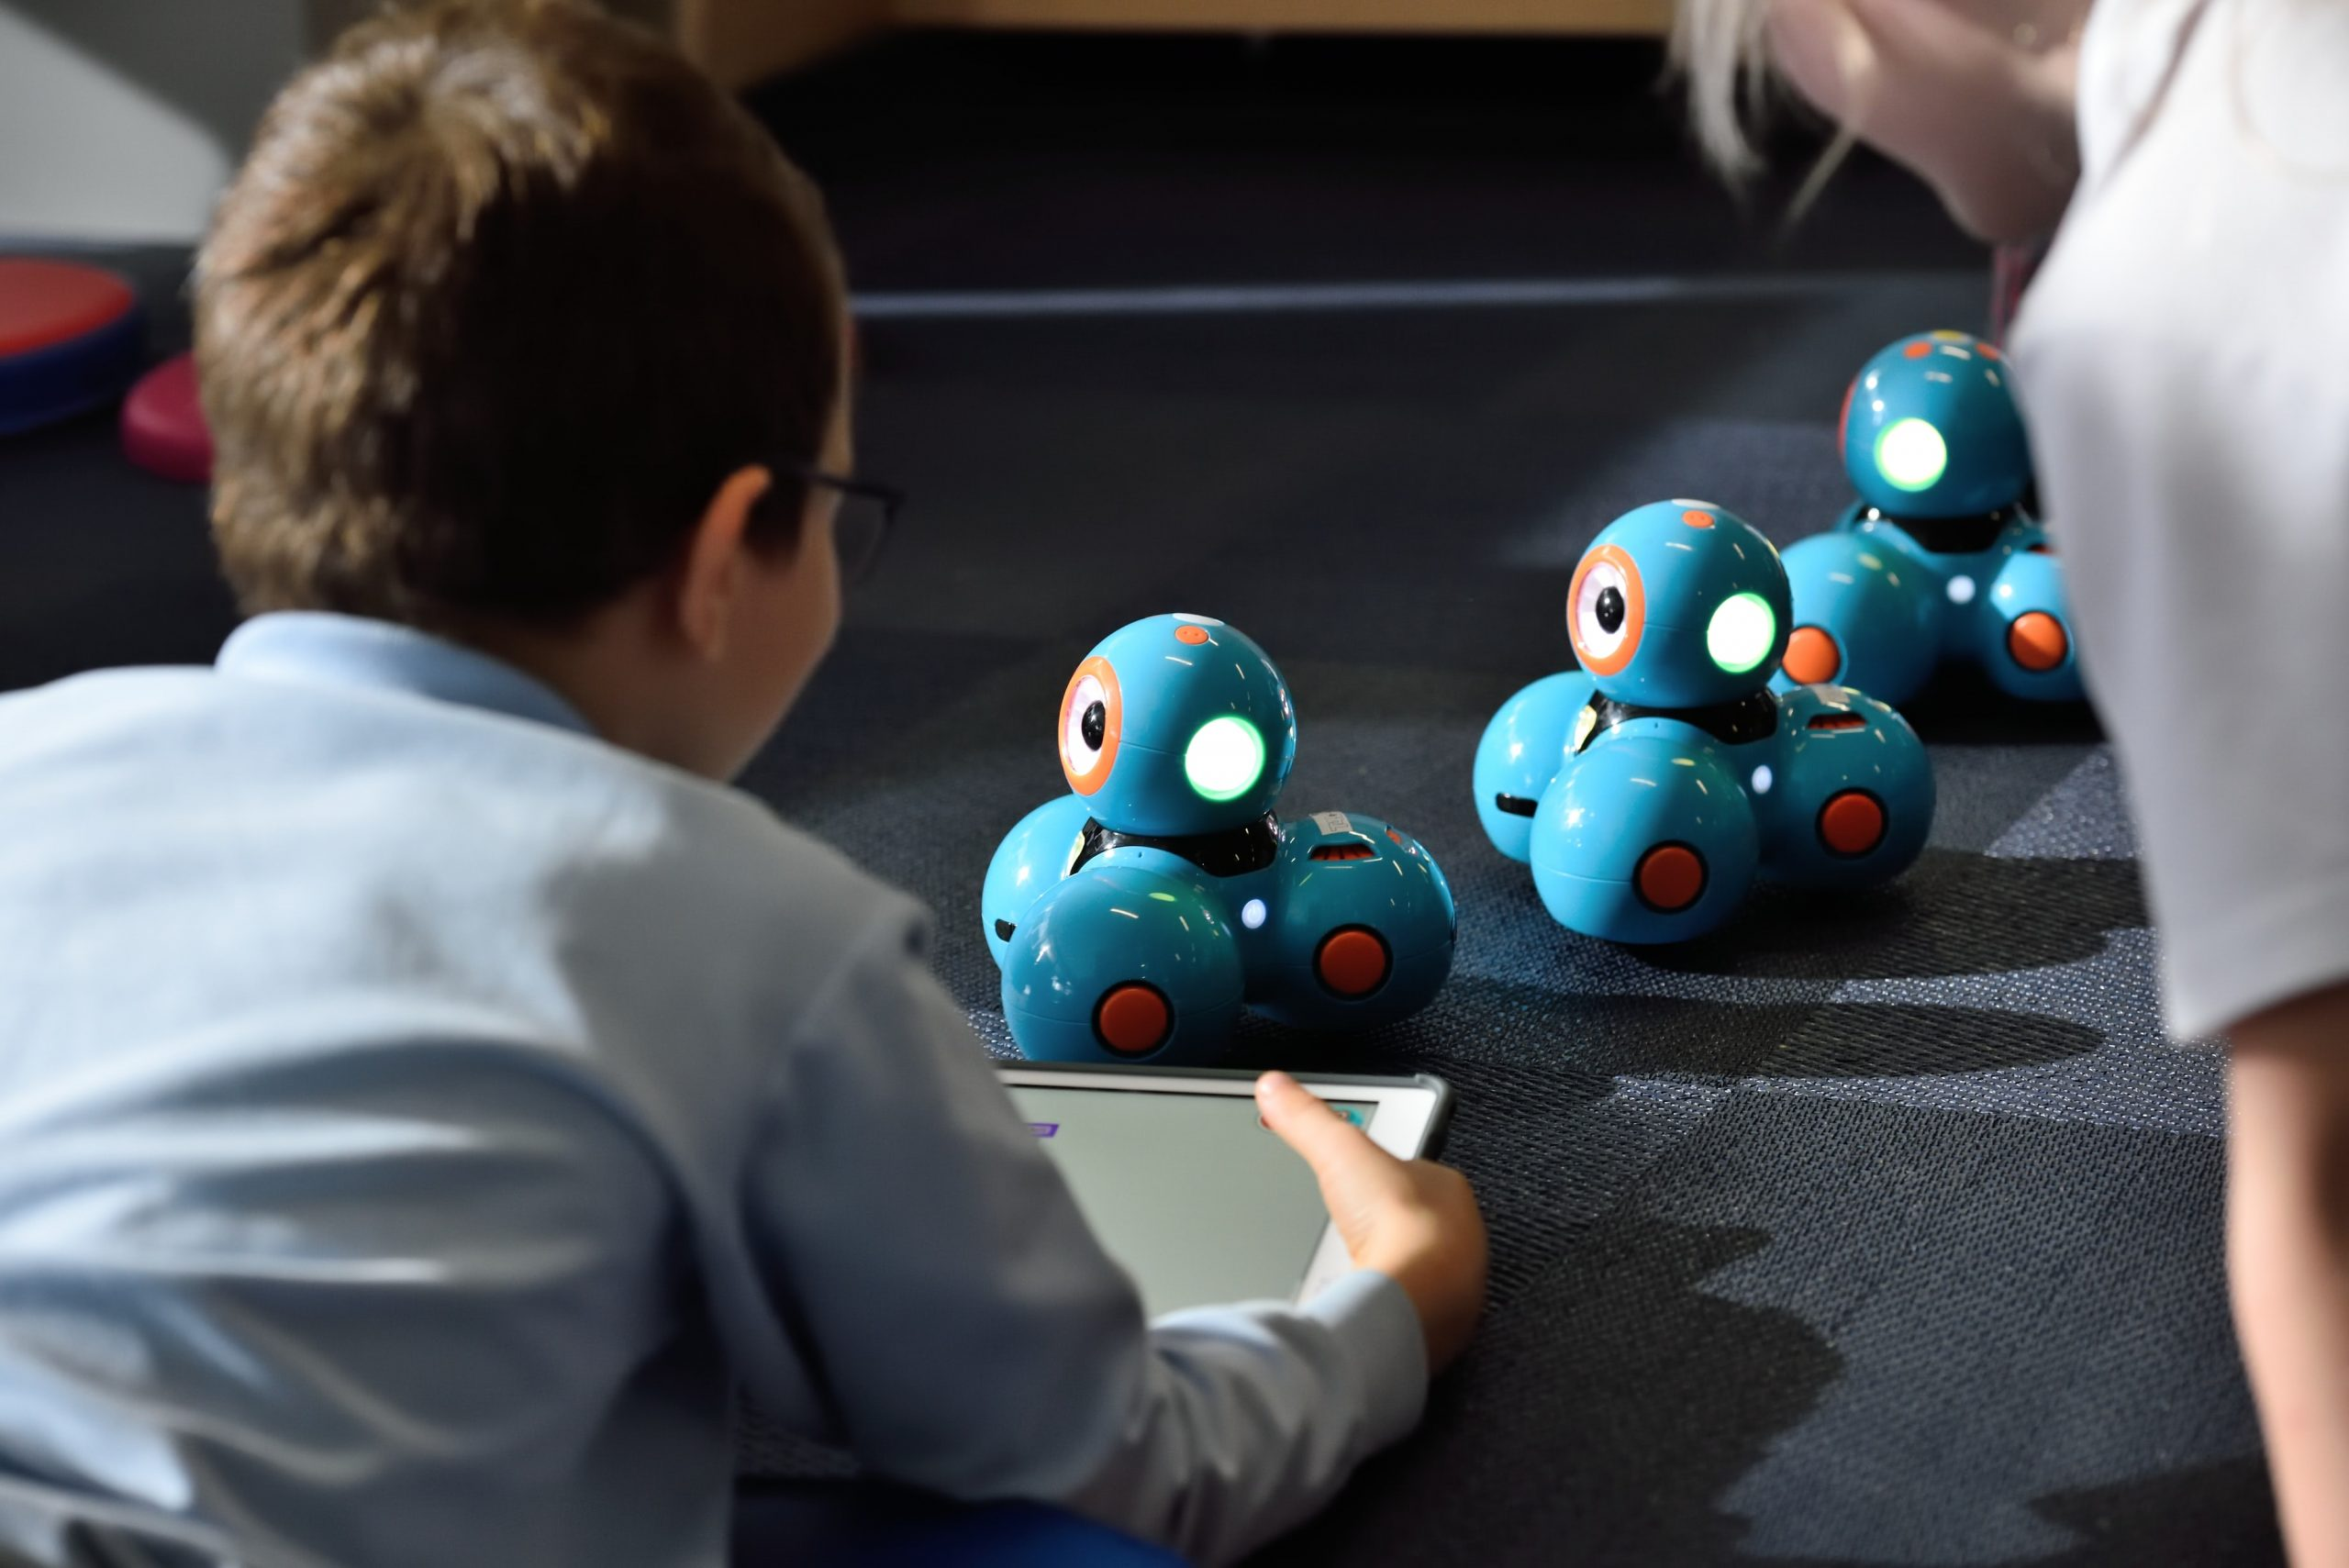 Kid playing with robots